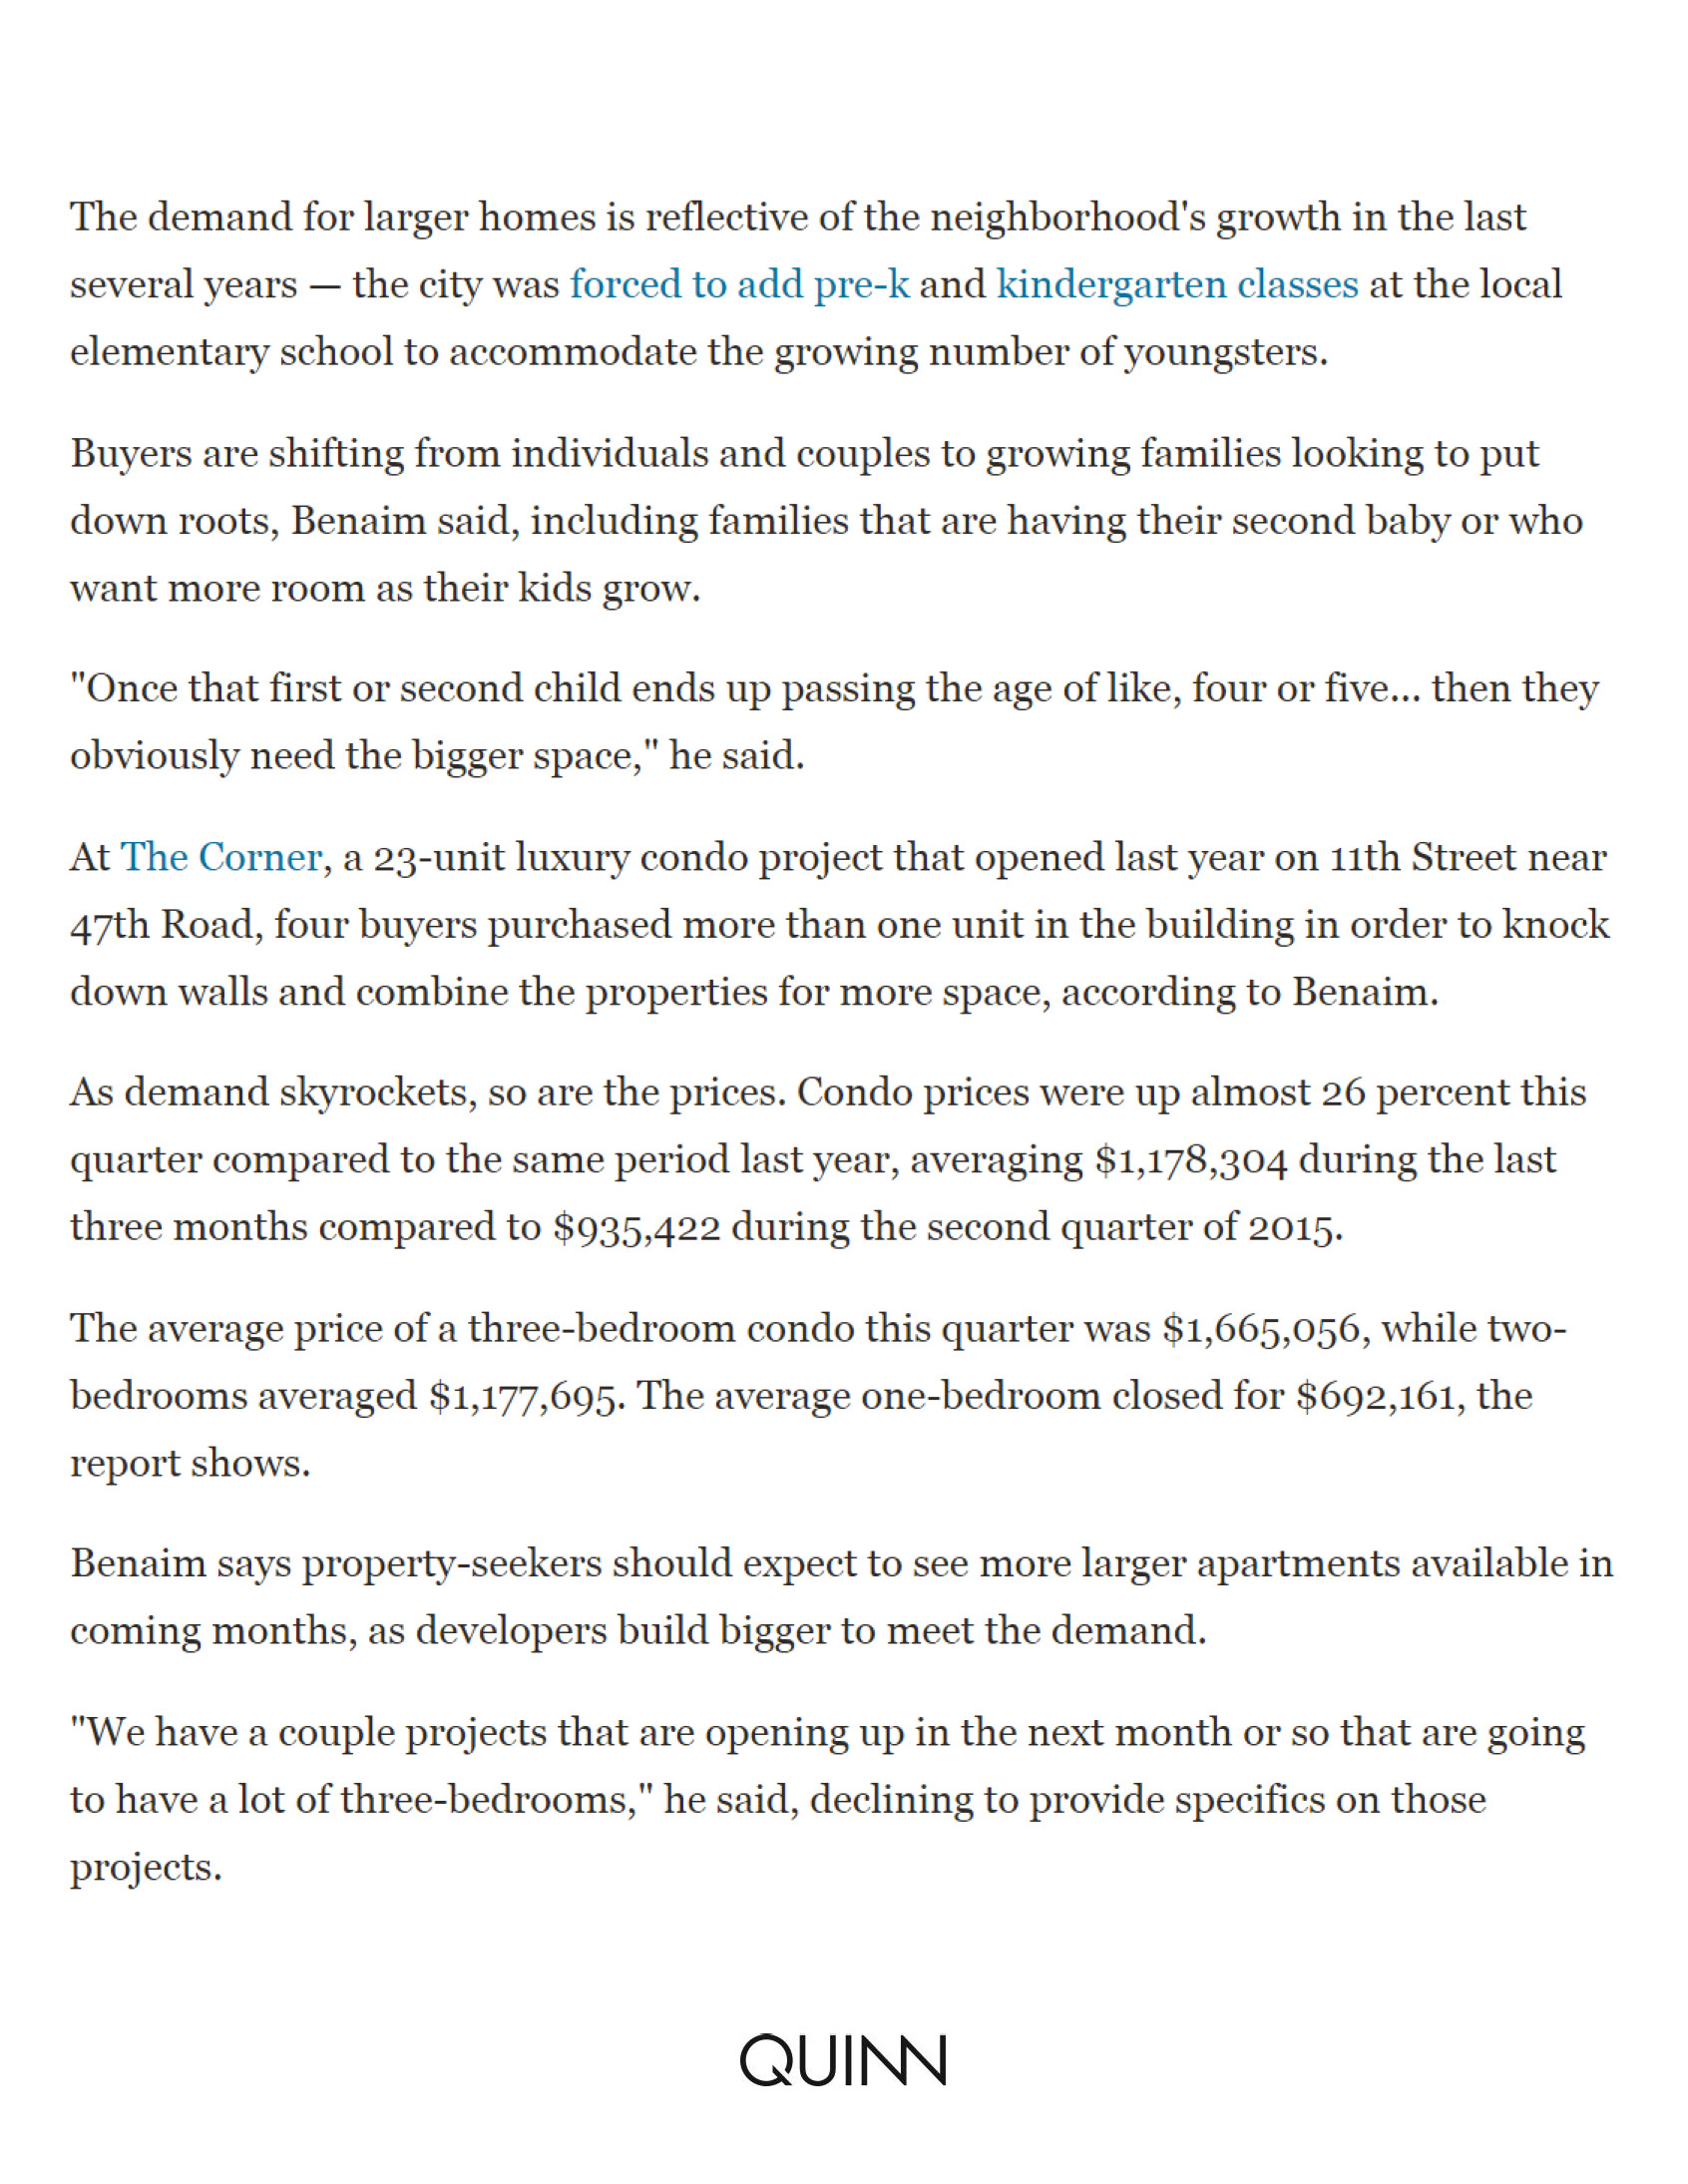 DNAinfo - Demand for Bigger Apartments in LIC Is Heating Up, Report Show..._Page_2